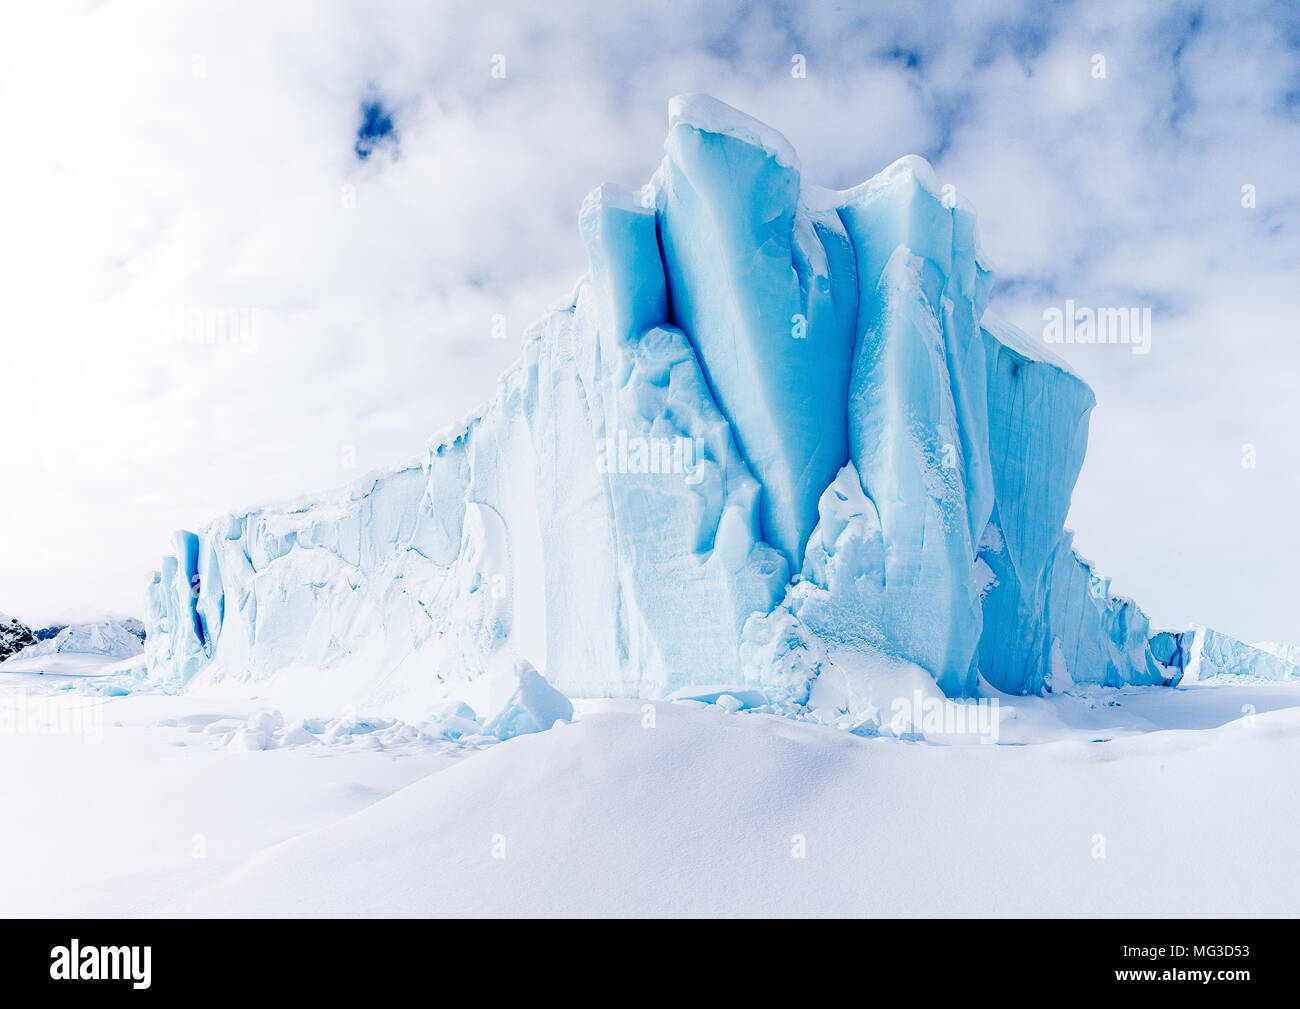 Icebergs frozen into the fjords of Baffin Island, Nunavut, Canada - Stock Image